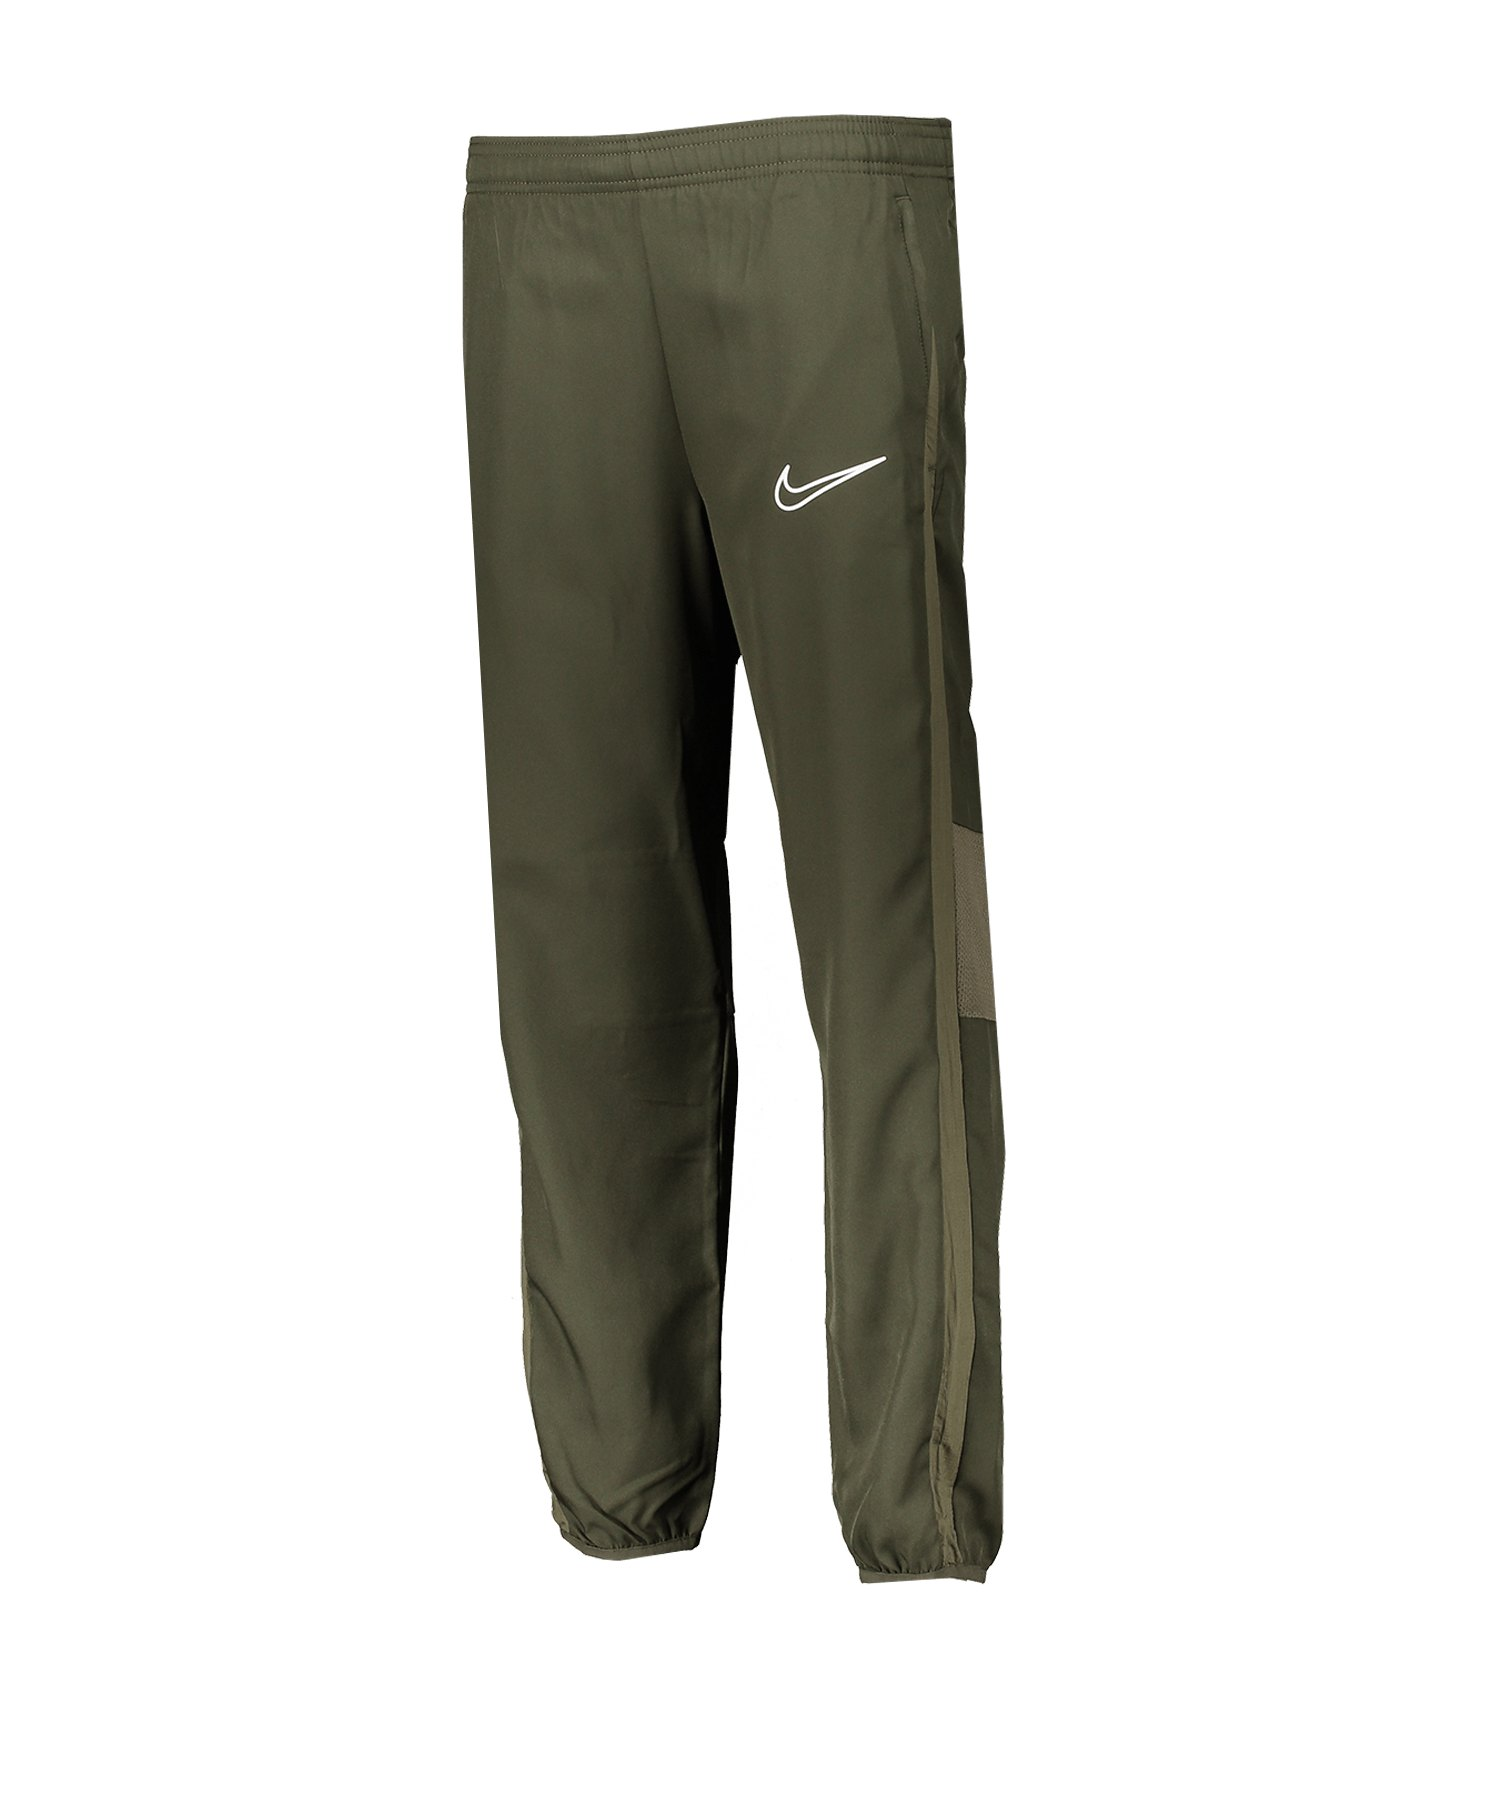 Nike Academy Dri-FIT Trainingshose Kids Grün F325 - gruen